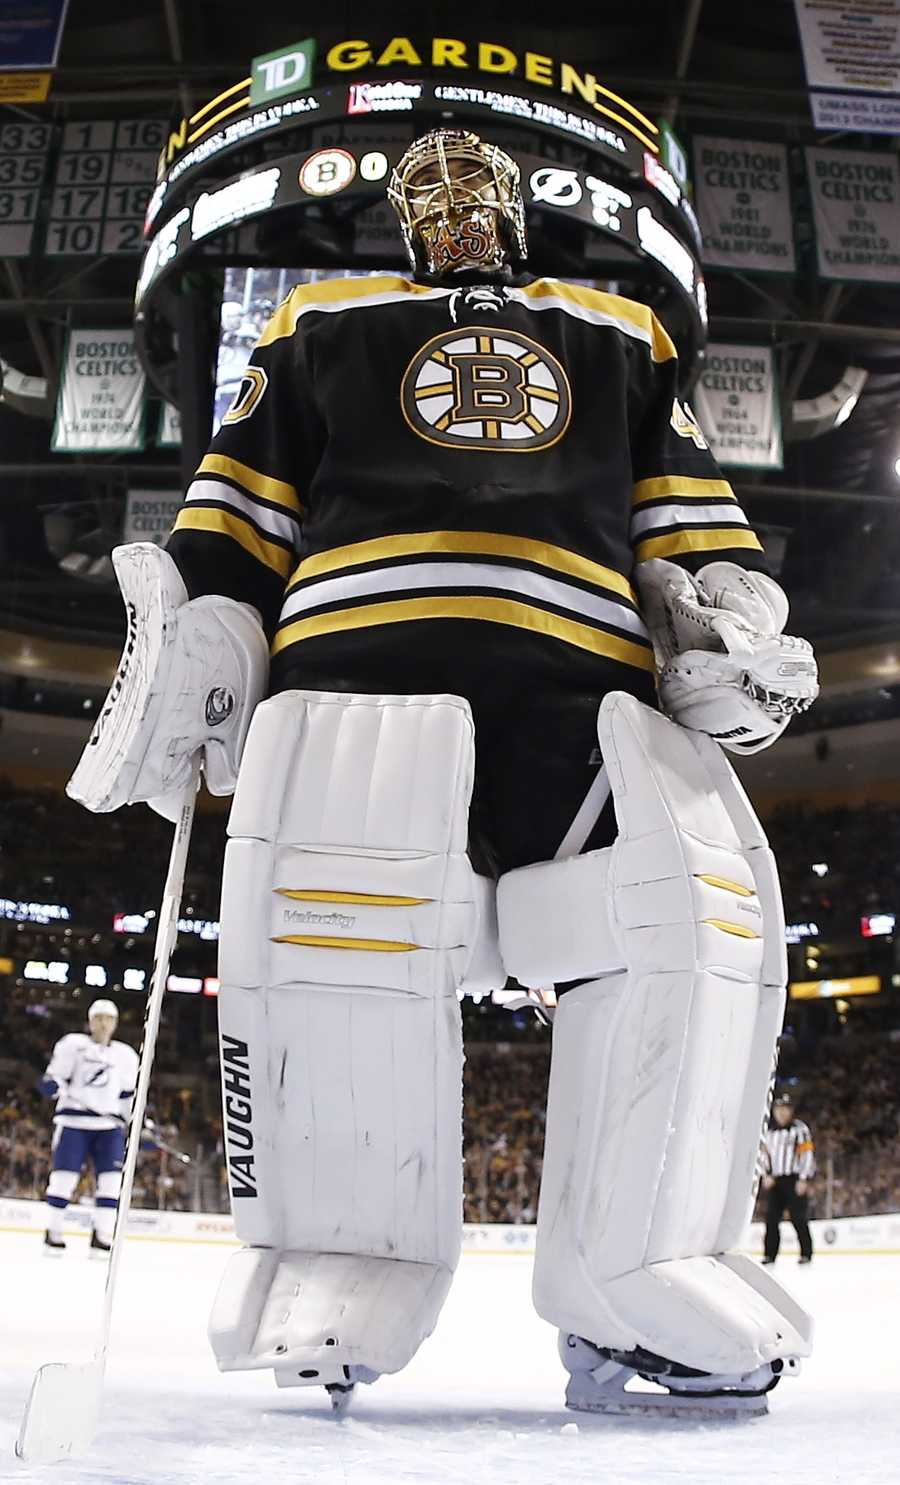 In May 2007, Rask signed a three-year contract with the Bruins. In July 2013, he signed an eight-year contract with the team.